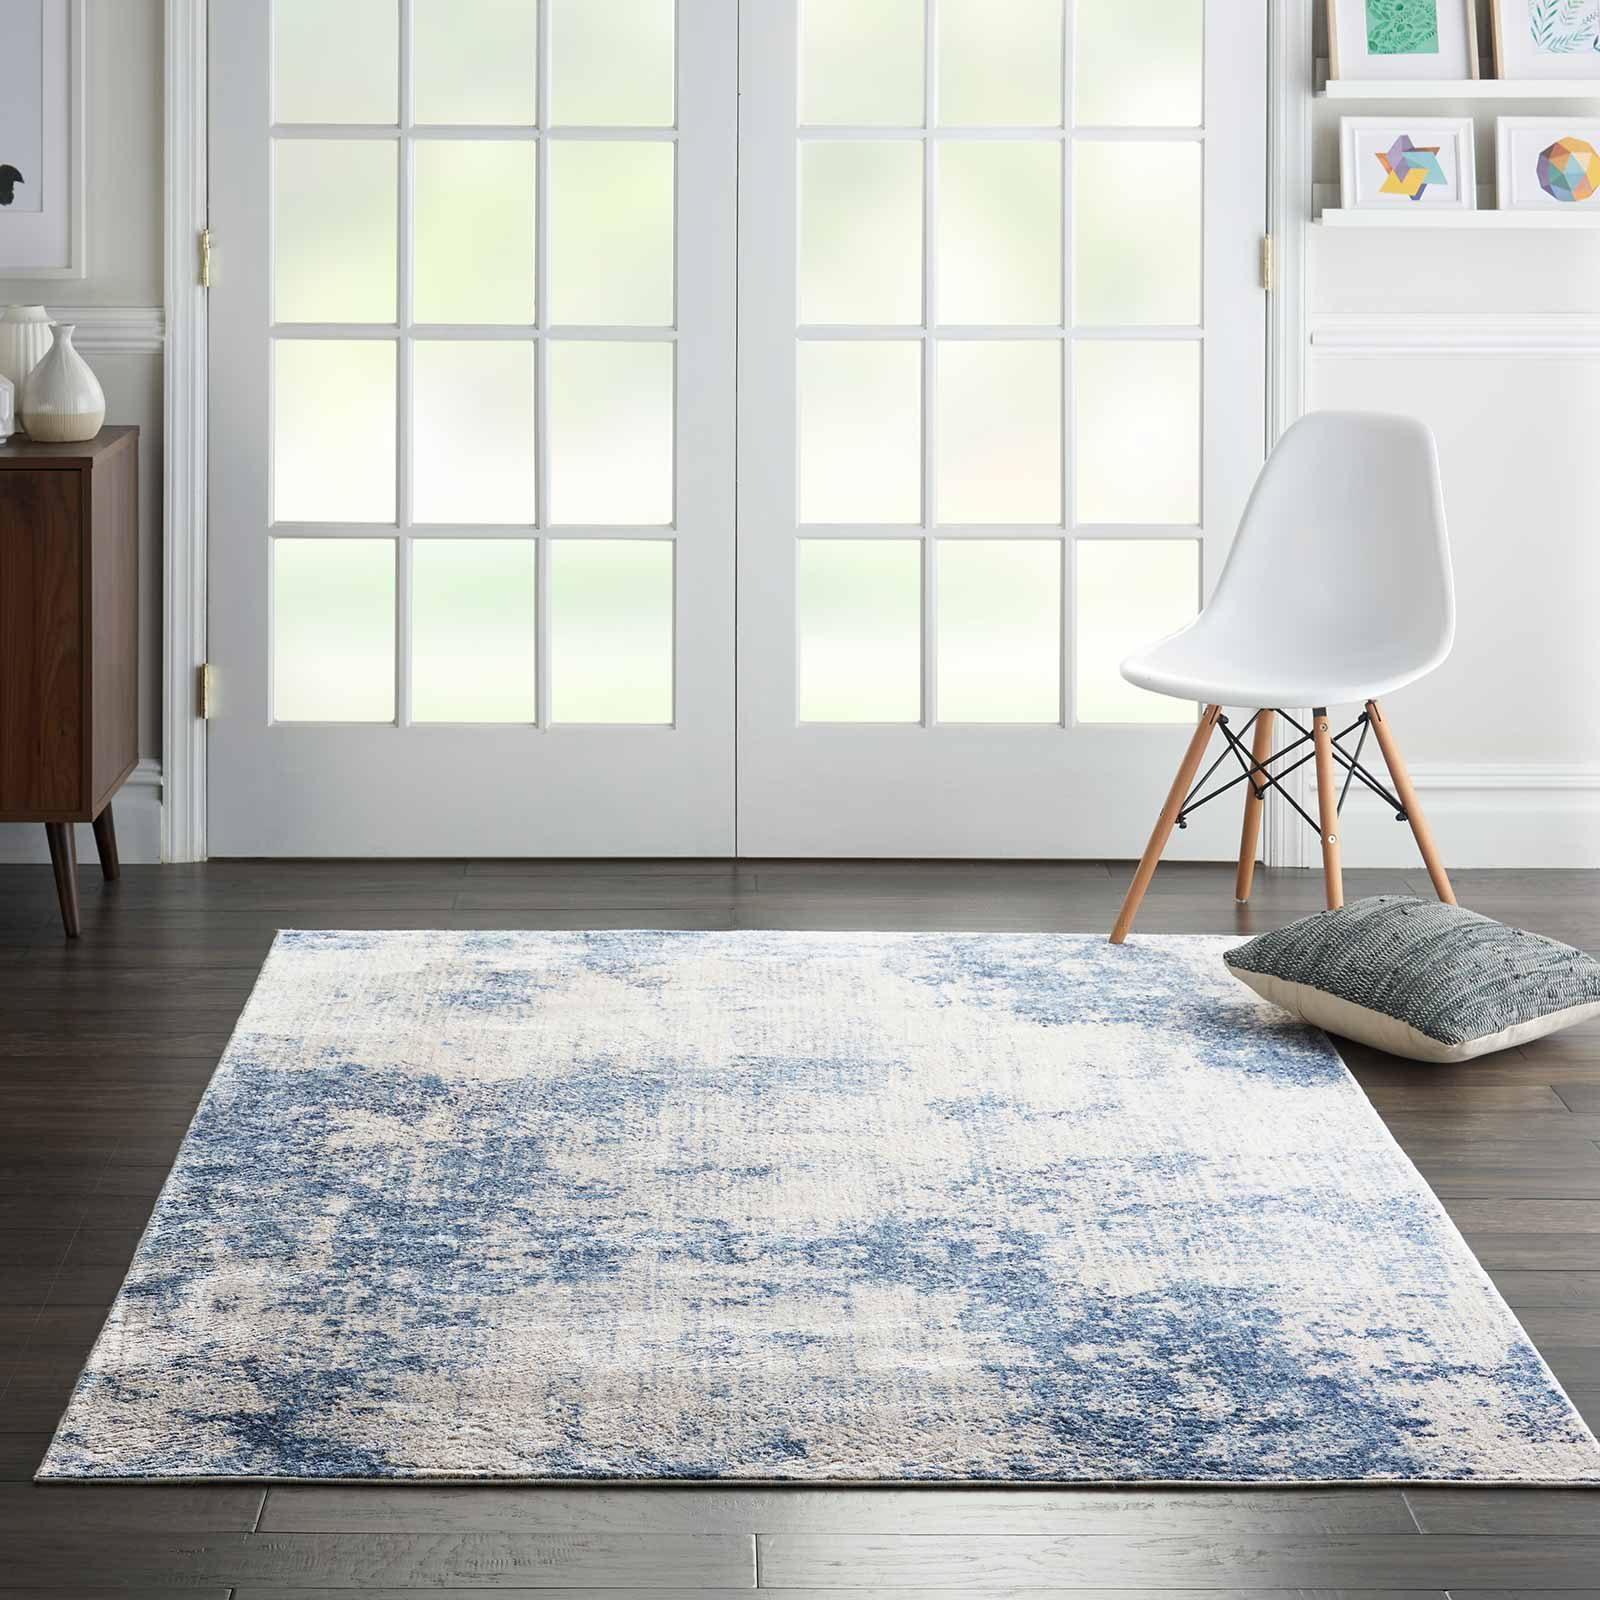 Nourison rug Silky Textures SLY01 IVORY BLUE 4x6 099446709677 interior 1 C